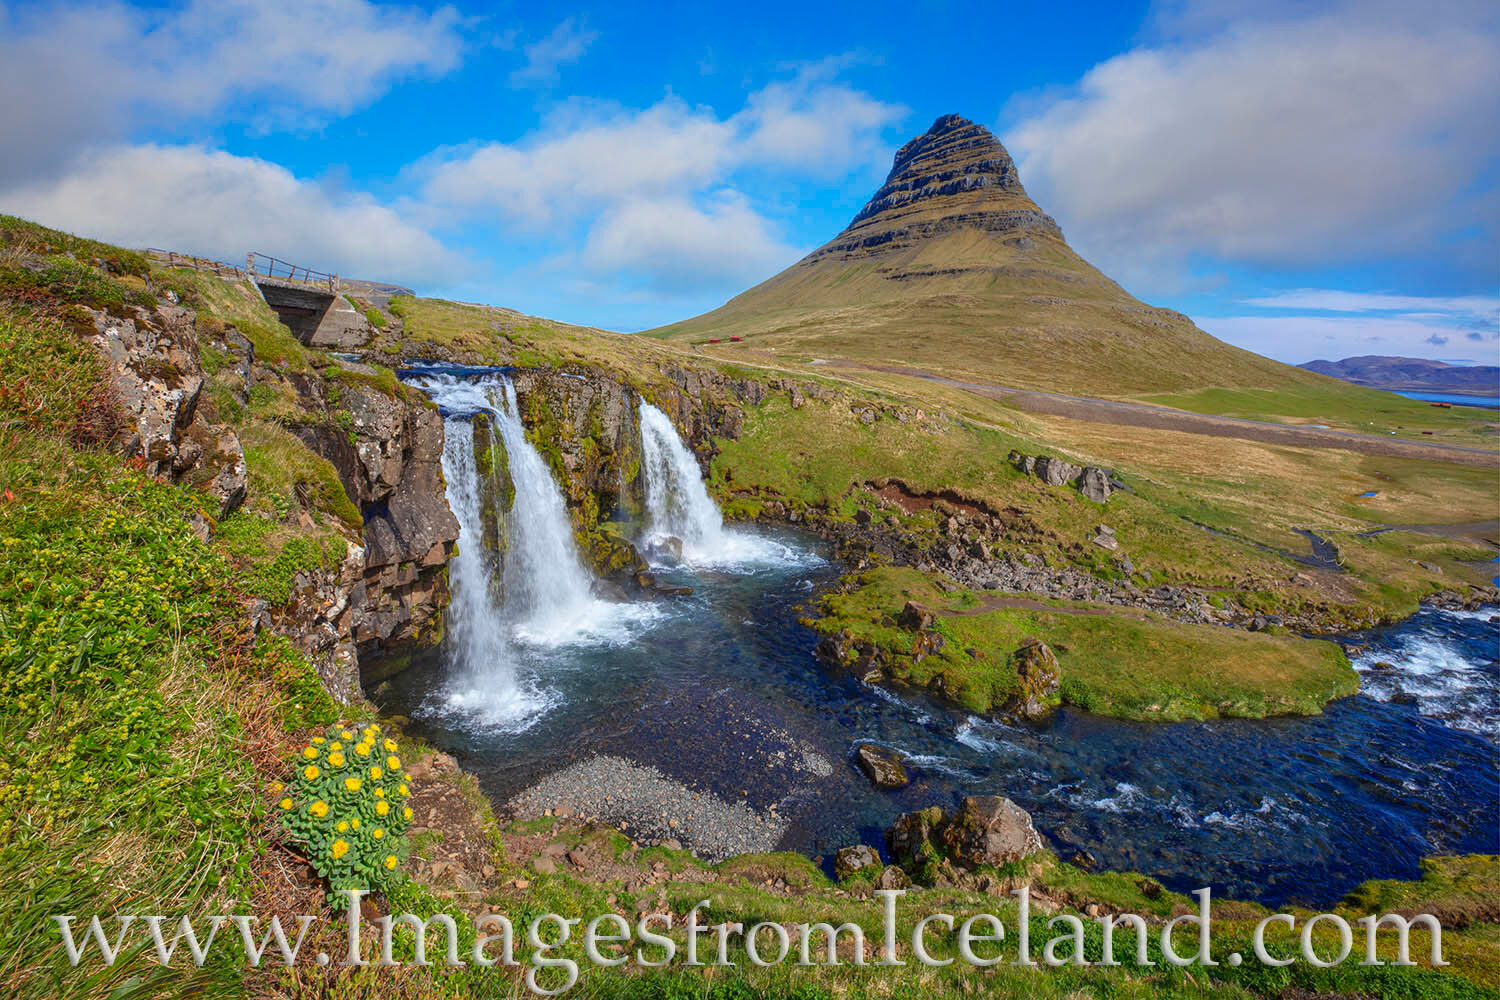 In the morning light, Kirkjufell Mountain rises 1,519' (463m) into the cold air. Kirkjufellfoss, the waterfall in the foreground...